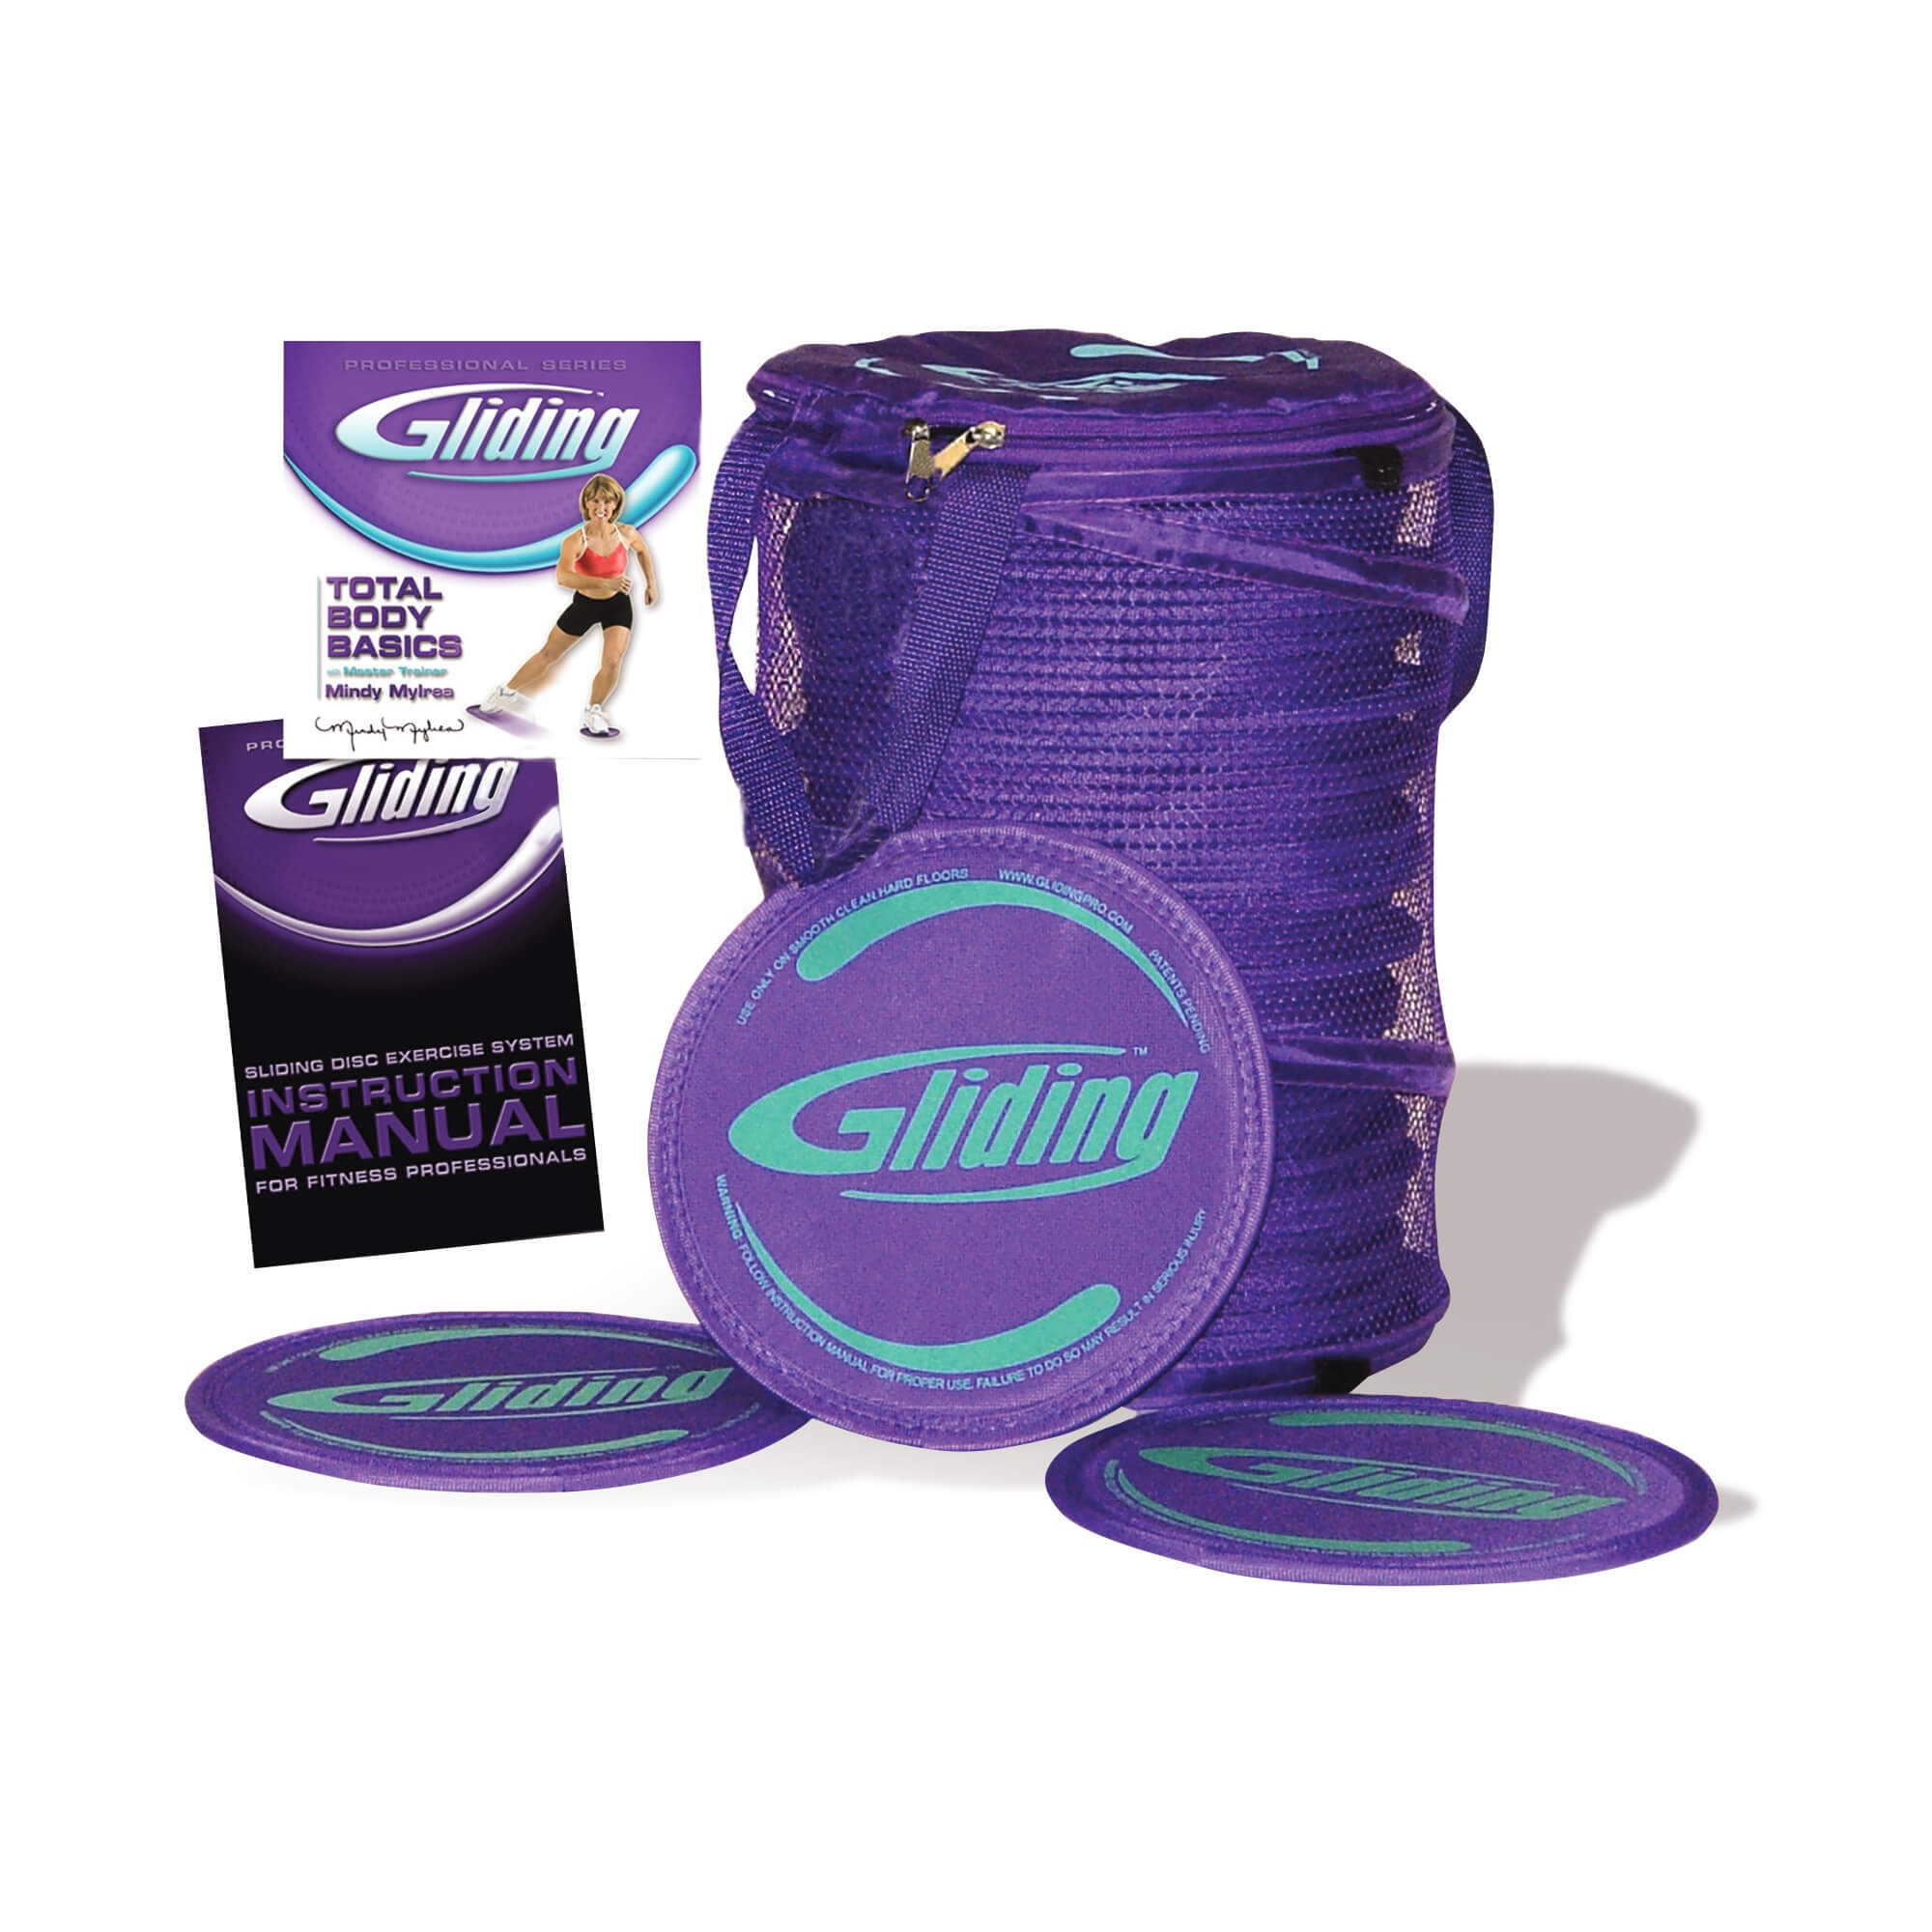 Gliding Pro Club Lite Kits 12 Pairs Buy Online At